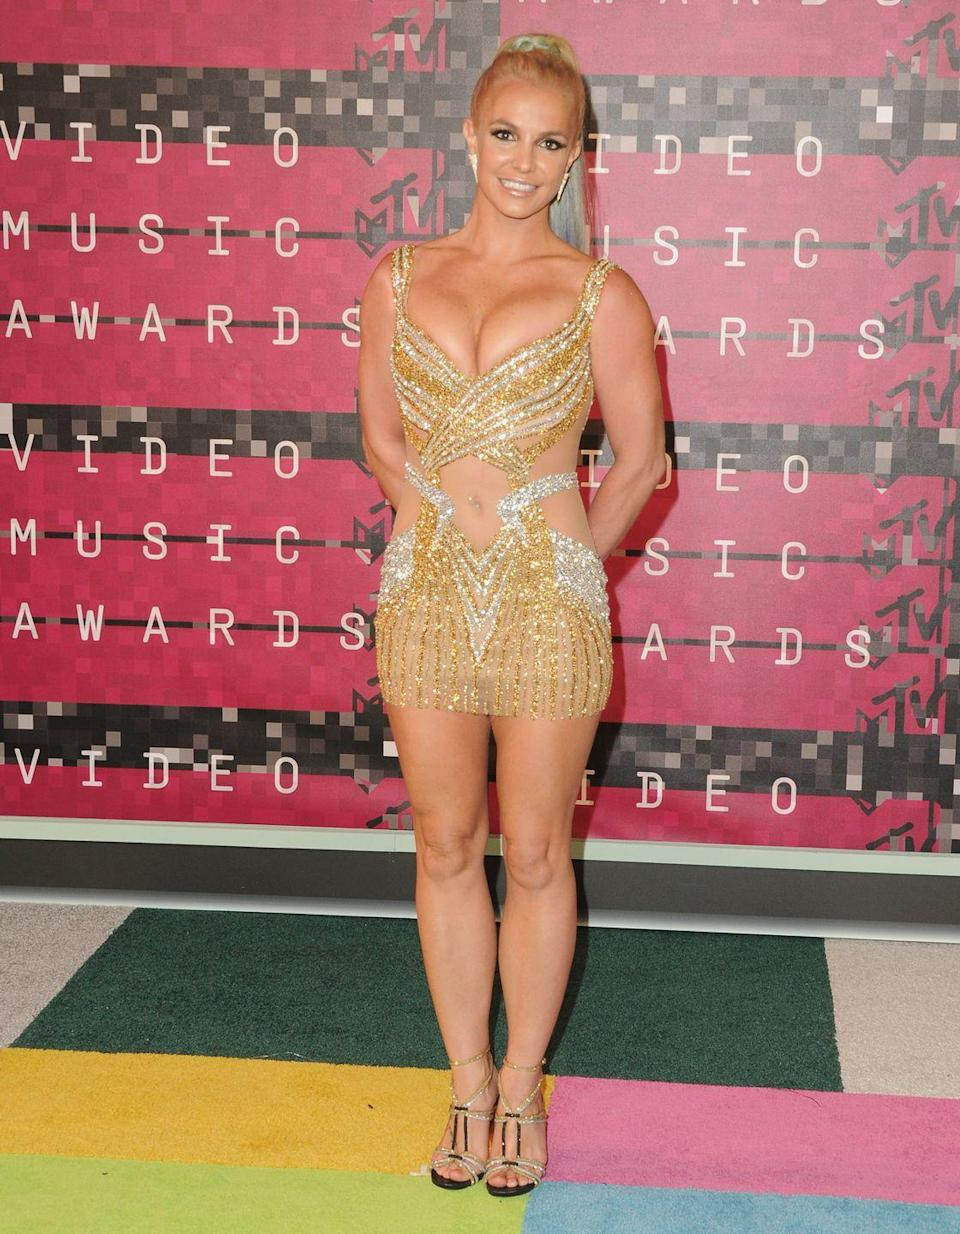 <p>Britney Spears wears an eye-catching outfit at the 2015 MTV Video Music Awards on August 30, 2015.</p>